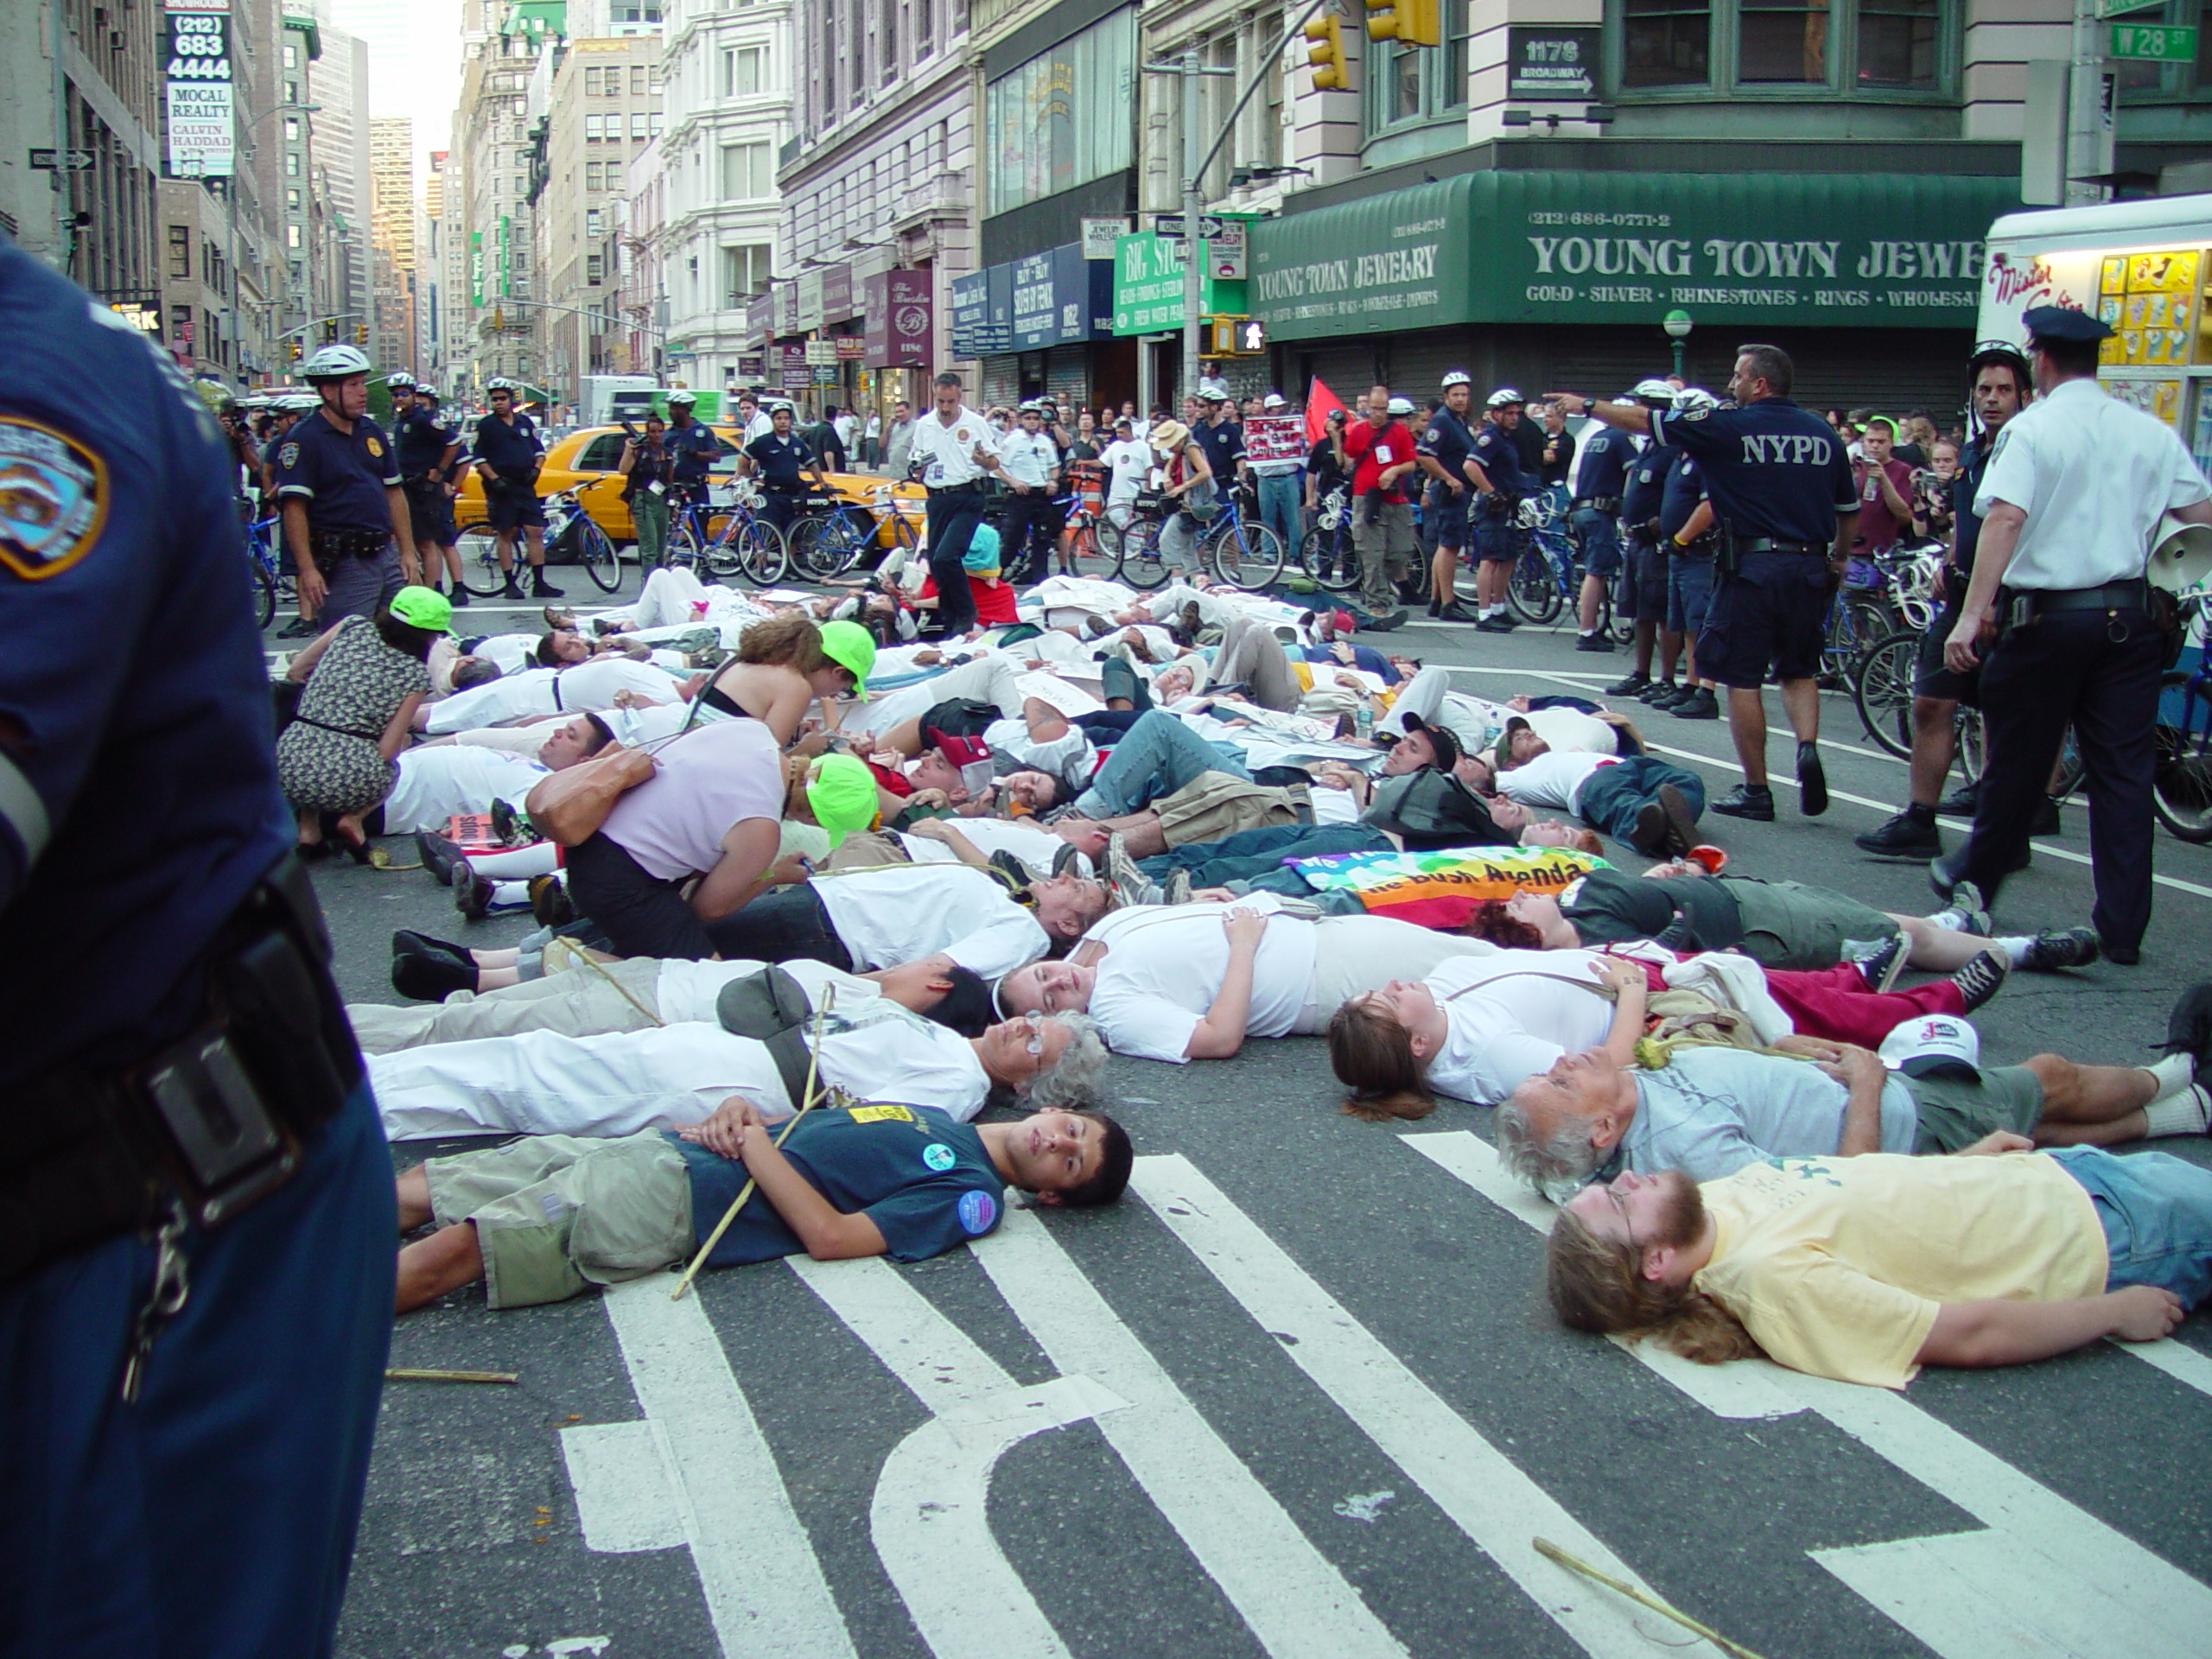 RNC Protesters in streets of New York